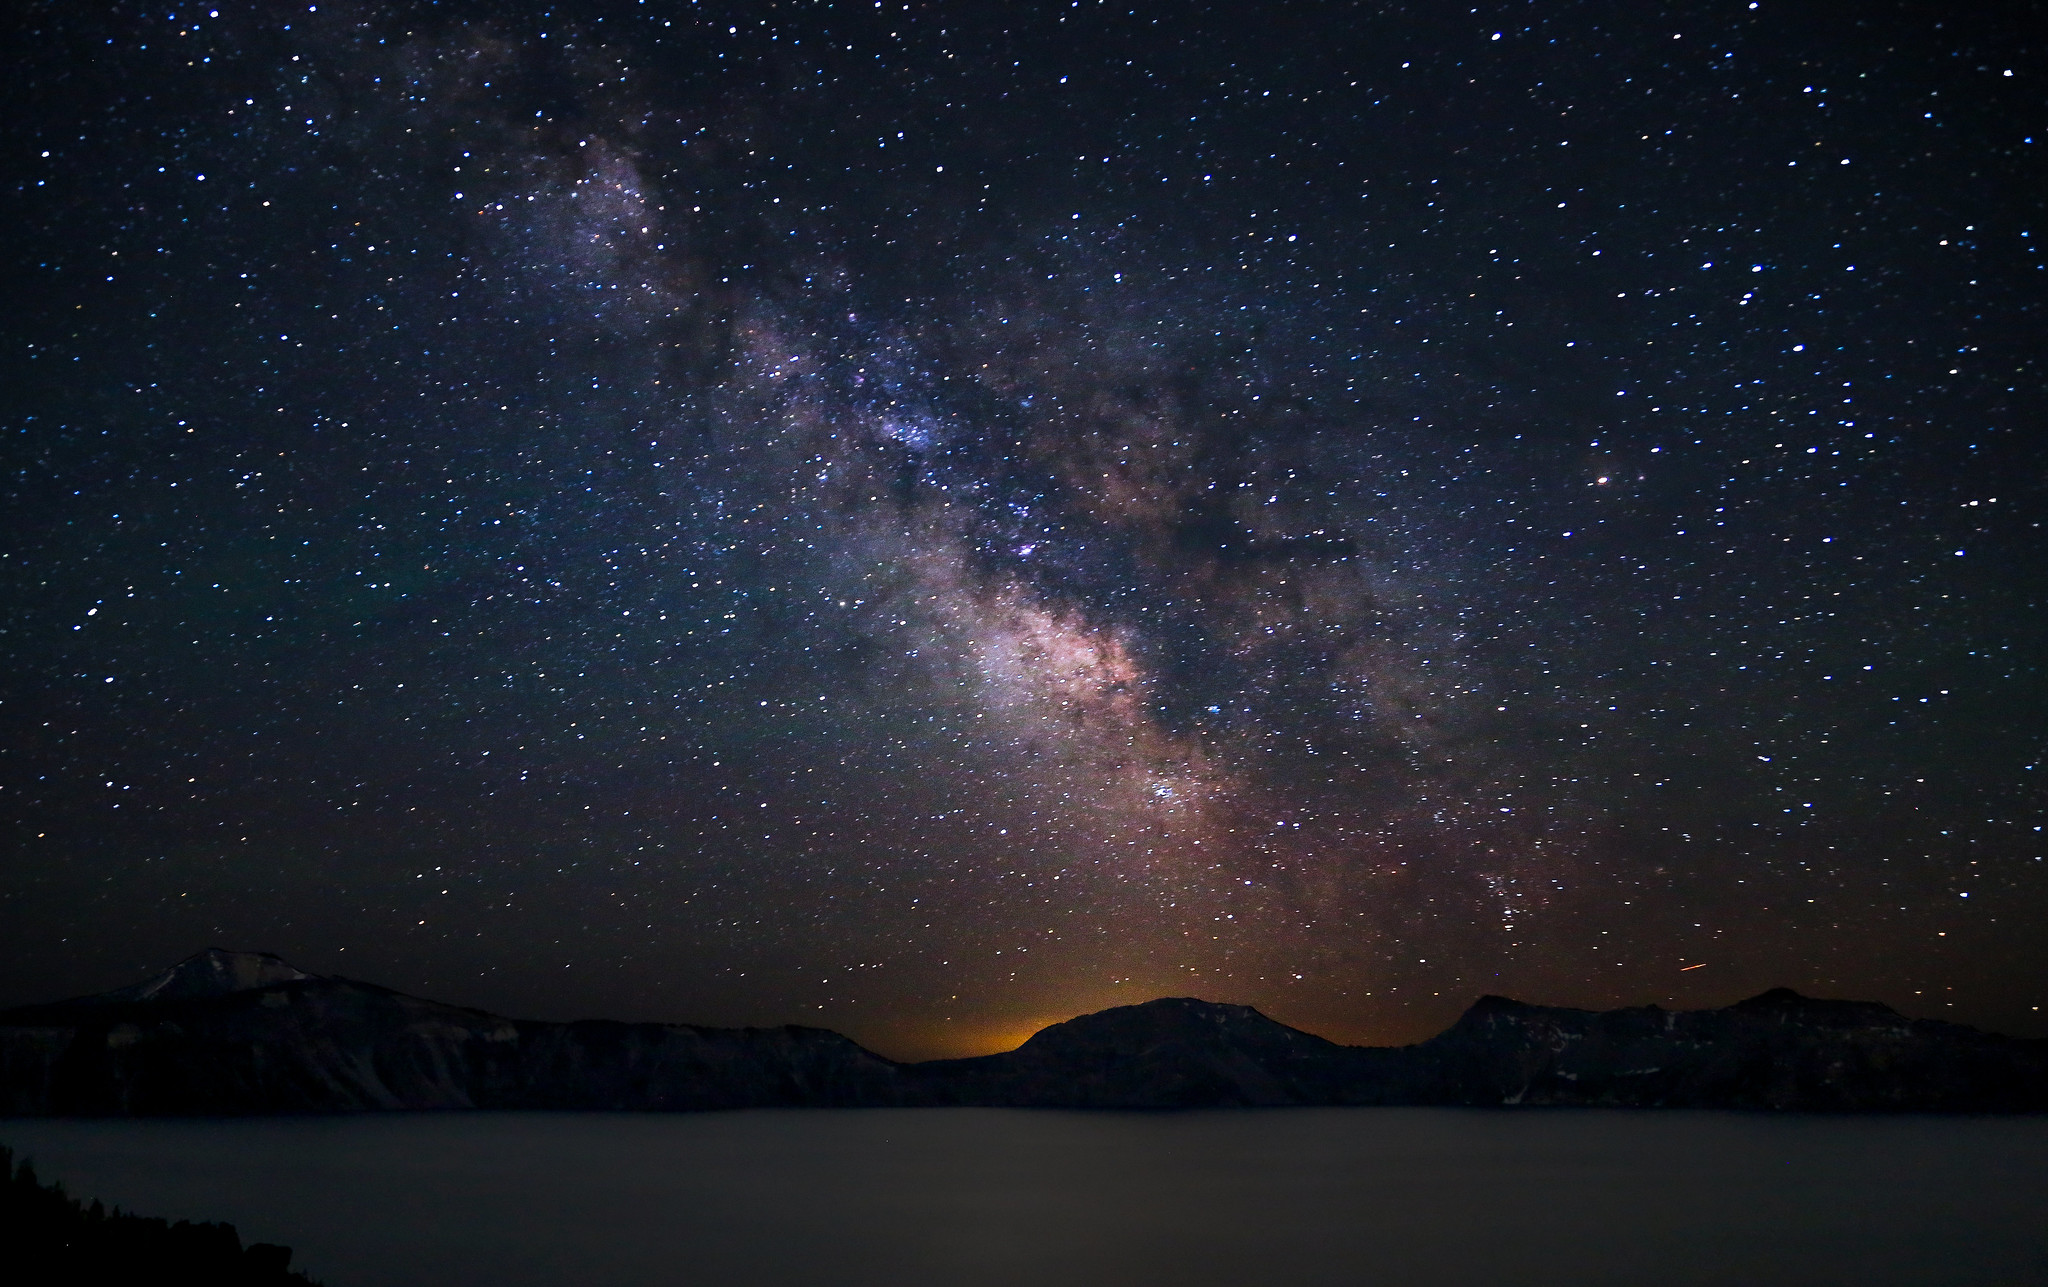 Milky Way Over Crater Lake [Explore 07/09/13]